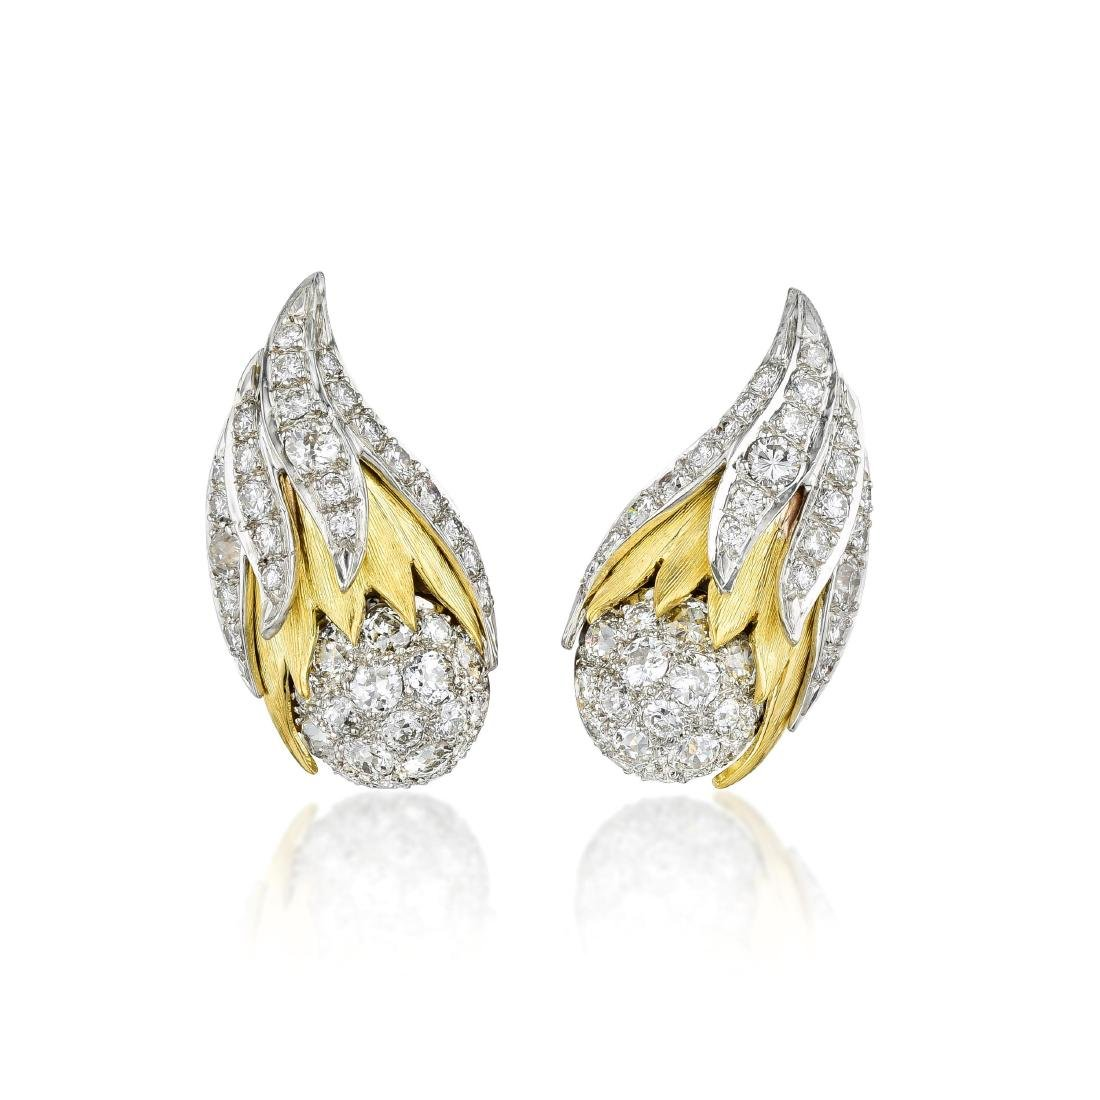 Erwin Pearl Diamond Earrings